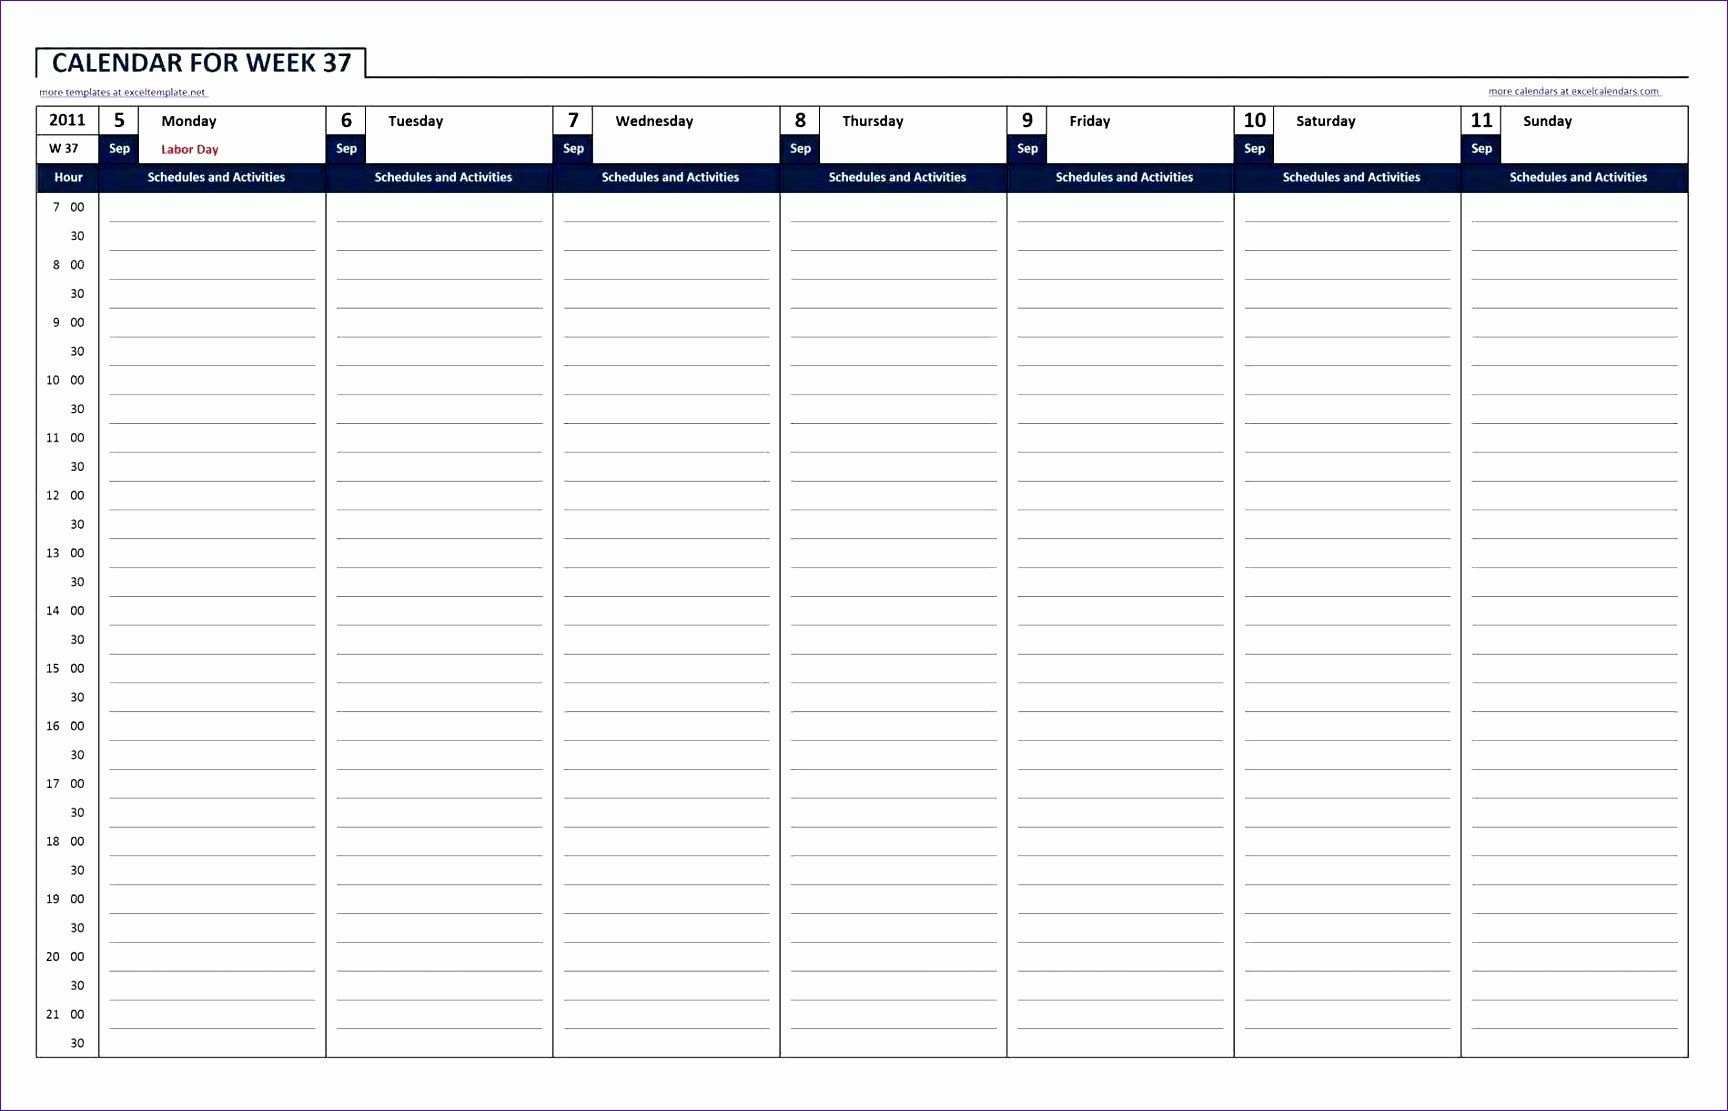 24 Hour Weekly Schedule Template Fresh 10 24 Hour Work Schedule Template Excel Exceltemplates In 2020 Weekly Planner Template Planner Template Schedule Template